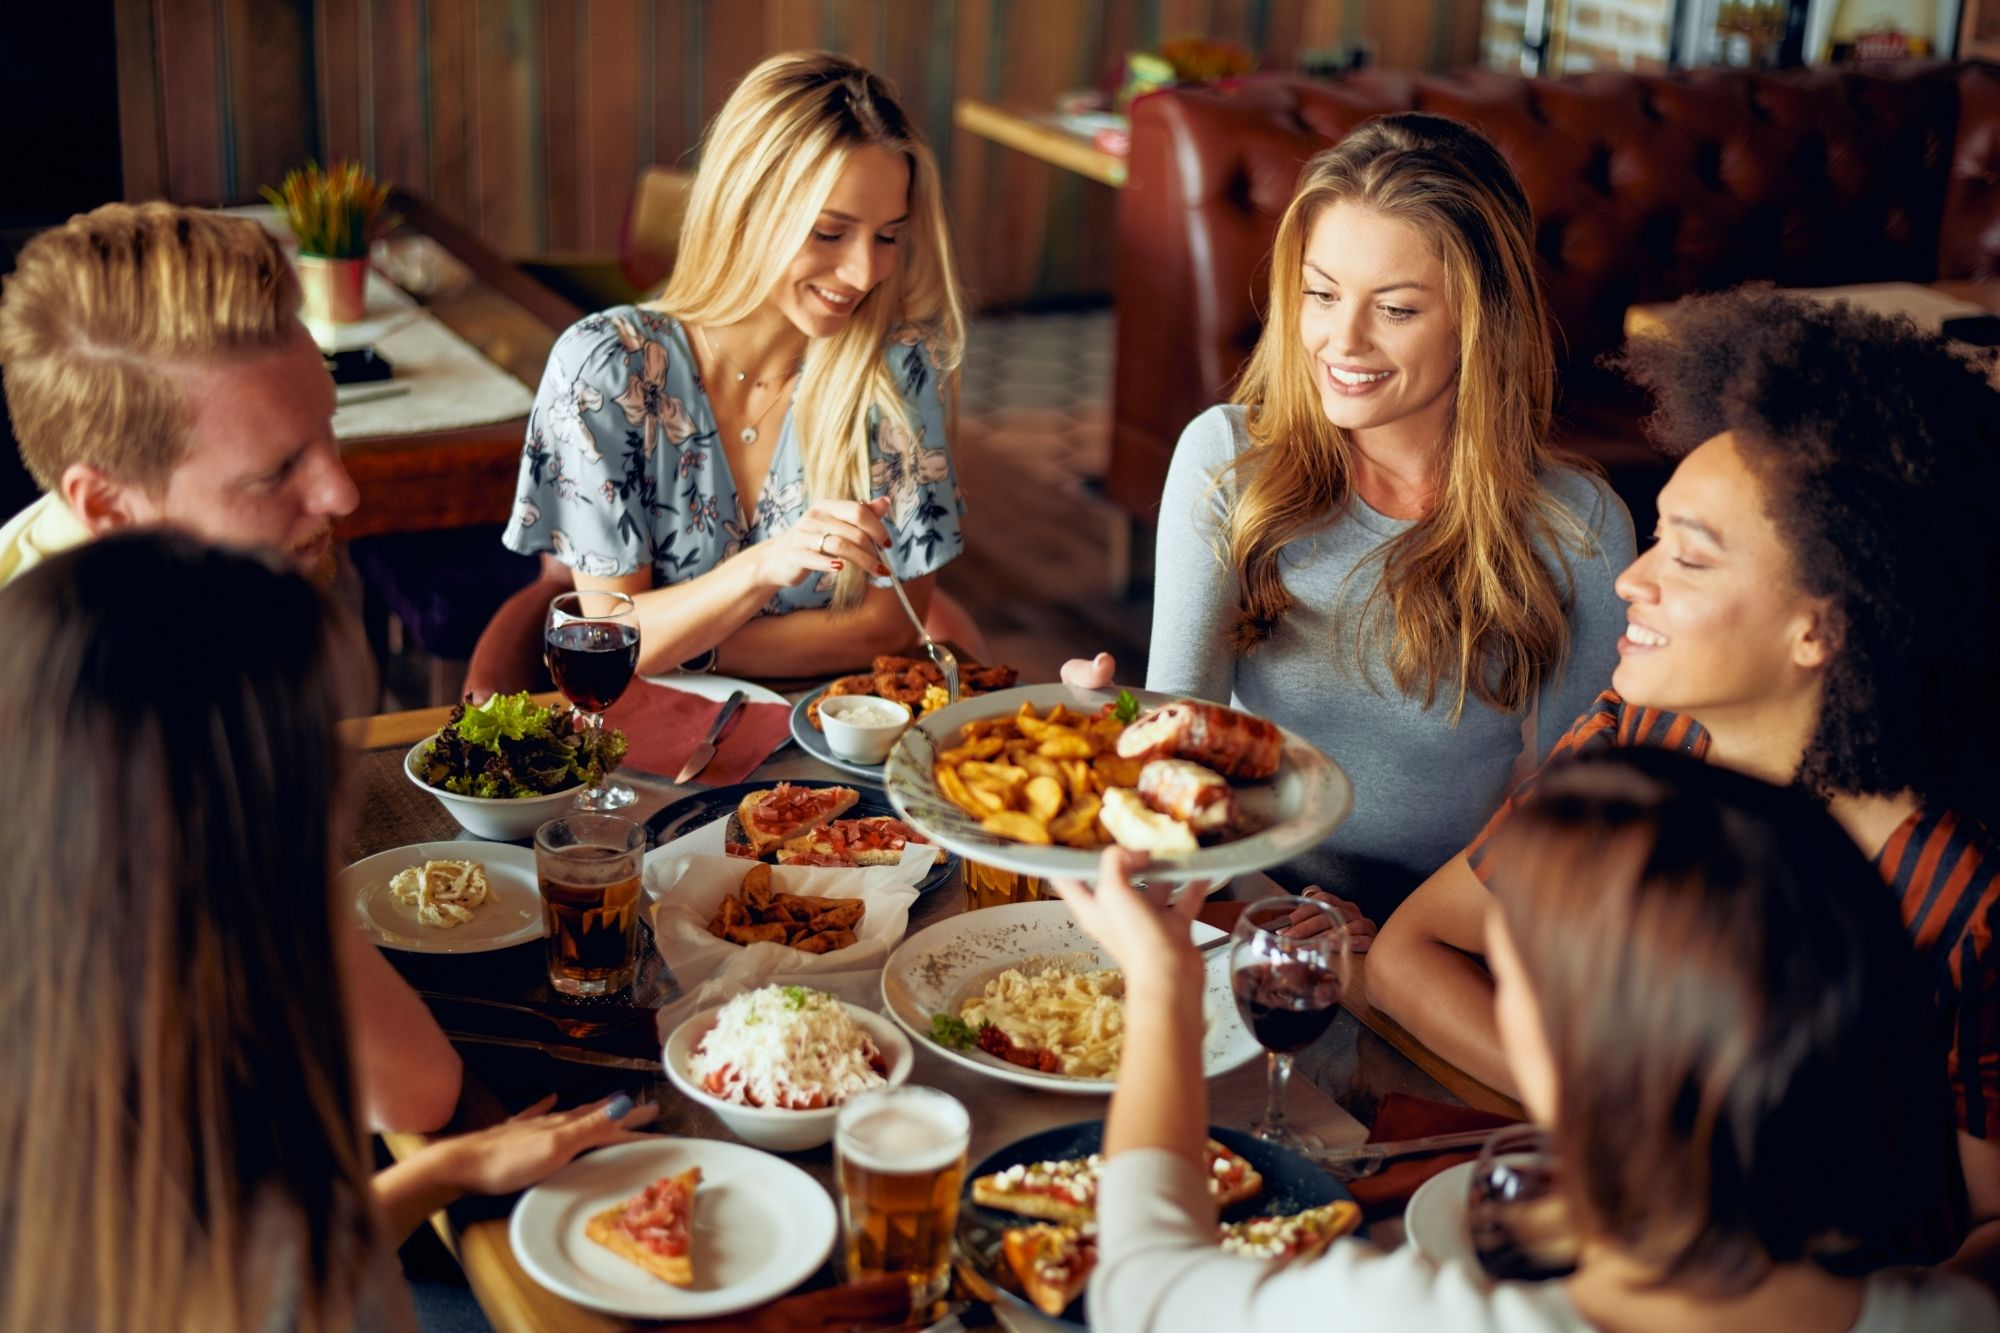 women eating food at a restaurant